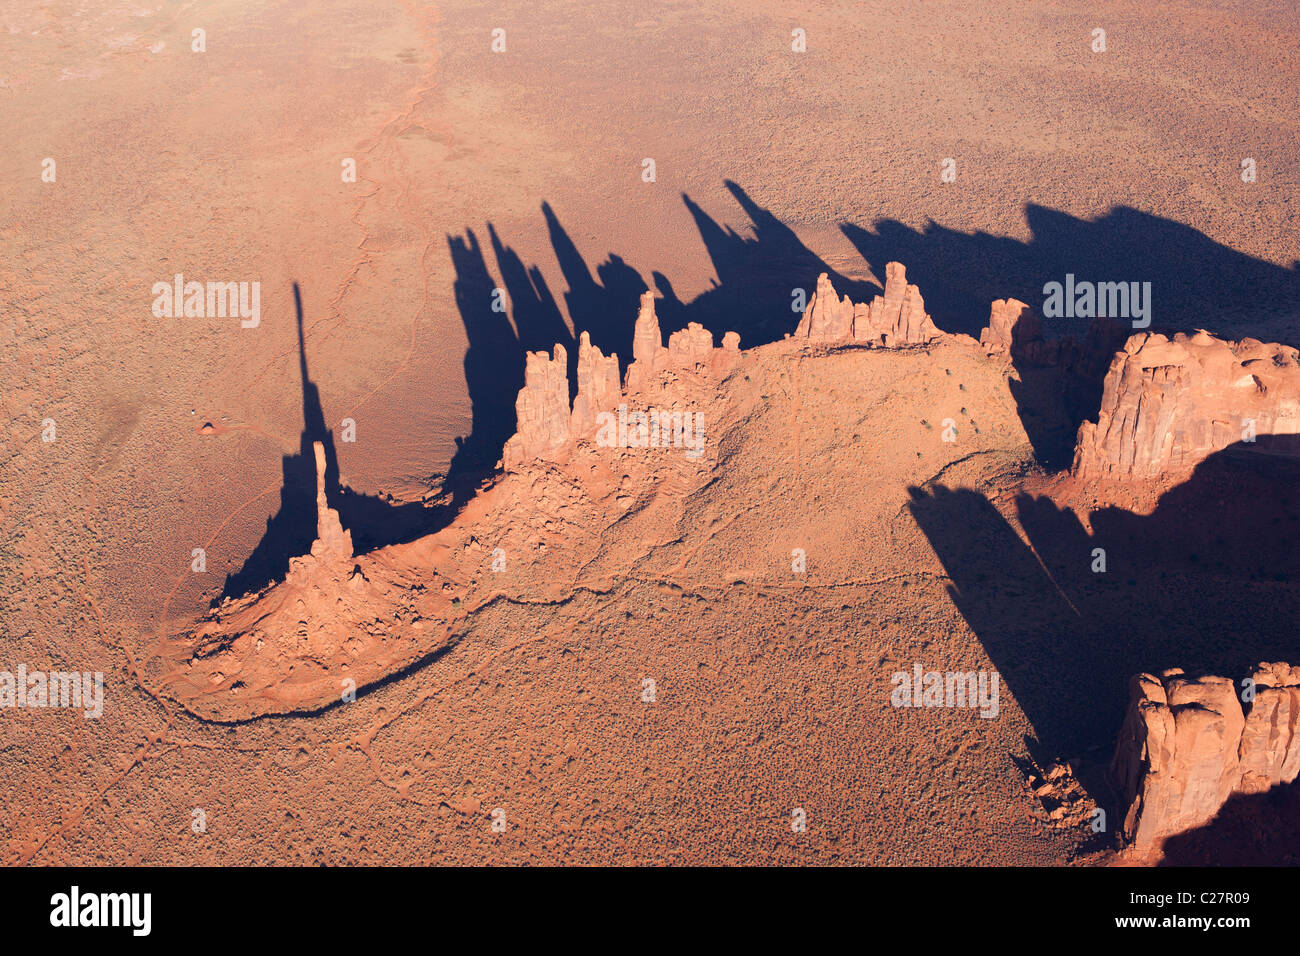 TOTEM POLE AND THE YEI BI CHEI (aerial view). Red sandstone pinnacles. Navajo Indian land, Arizona / Utah, USA. - Stock Image